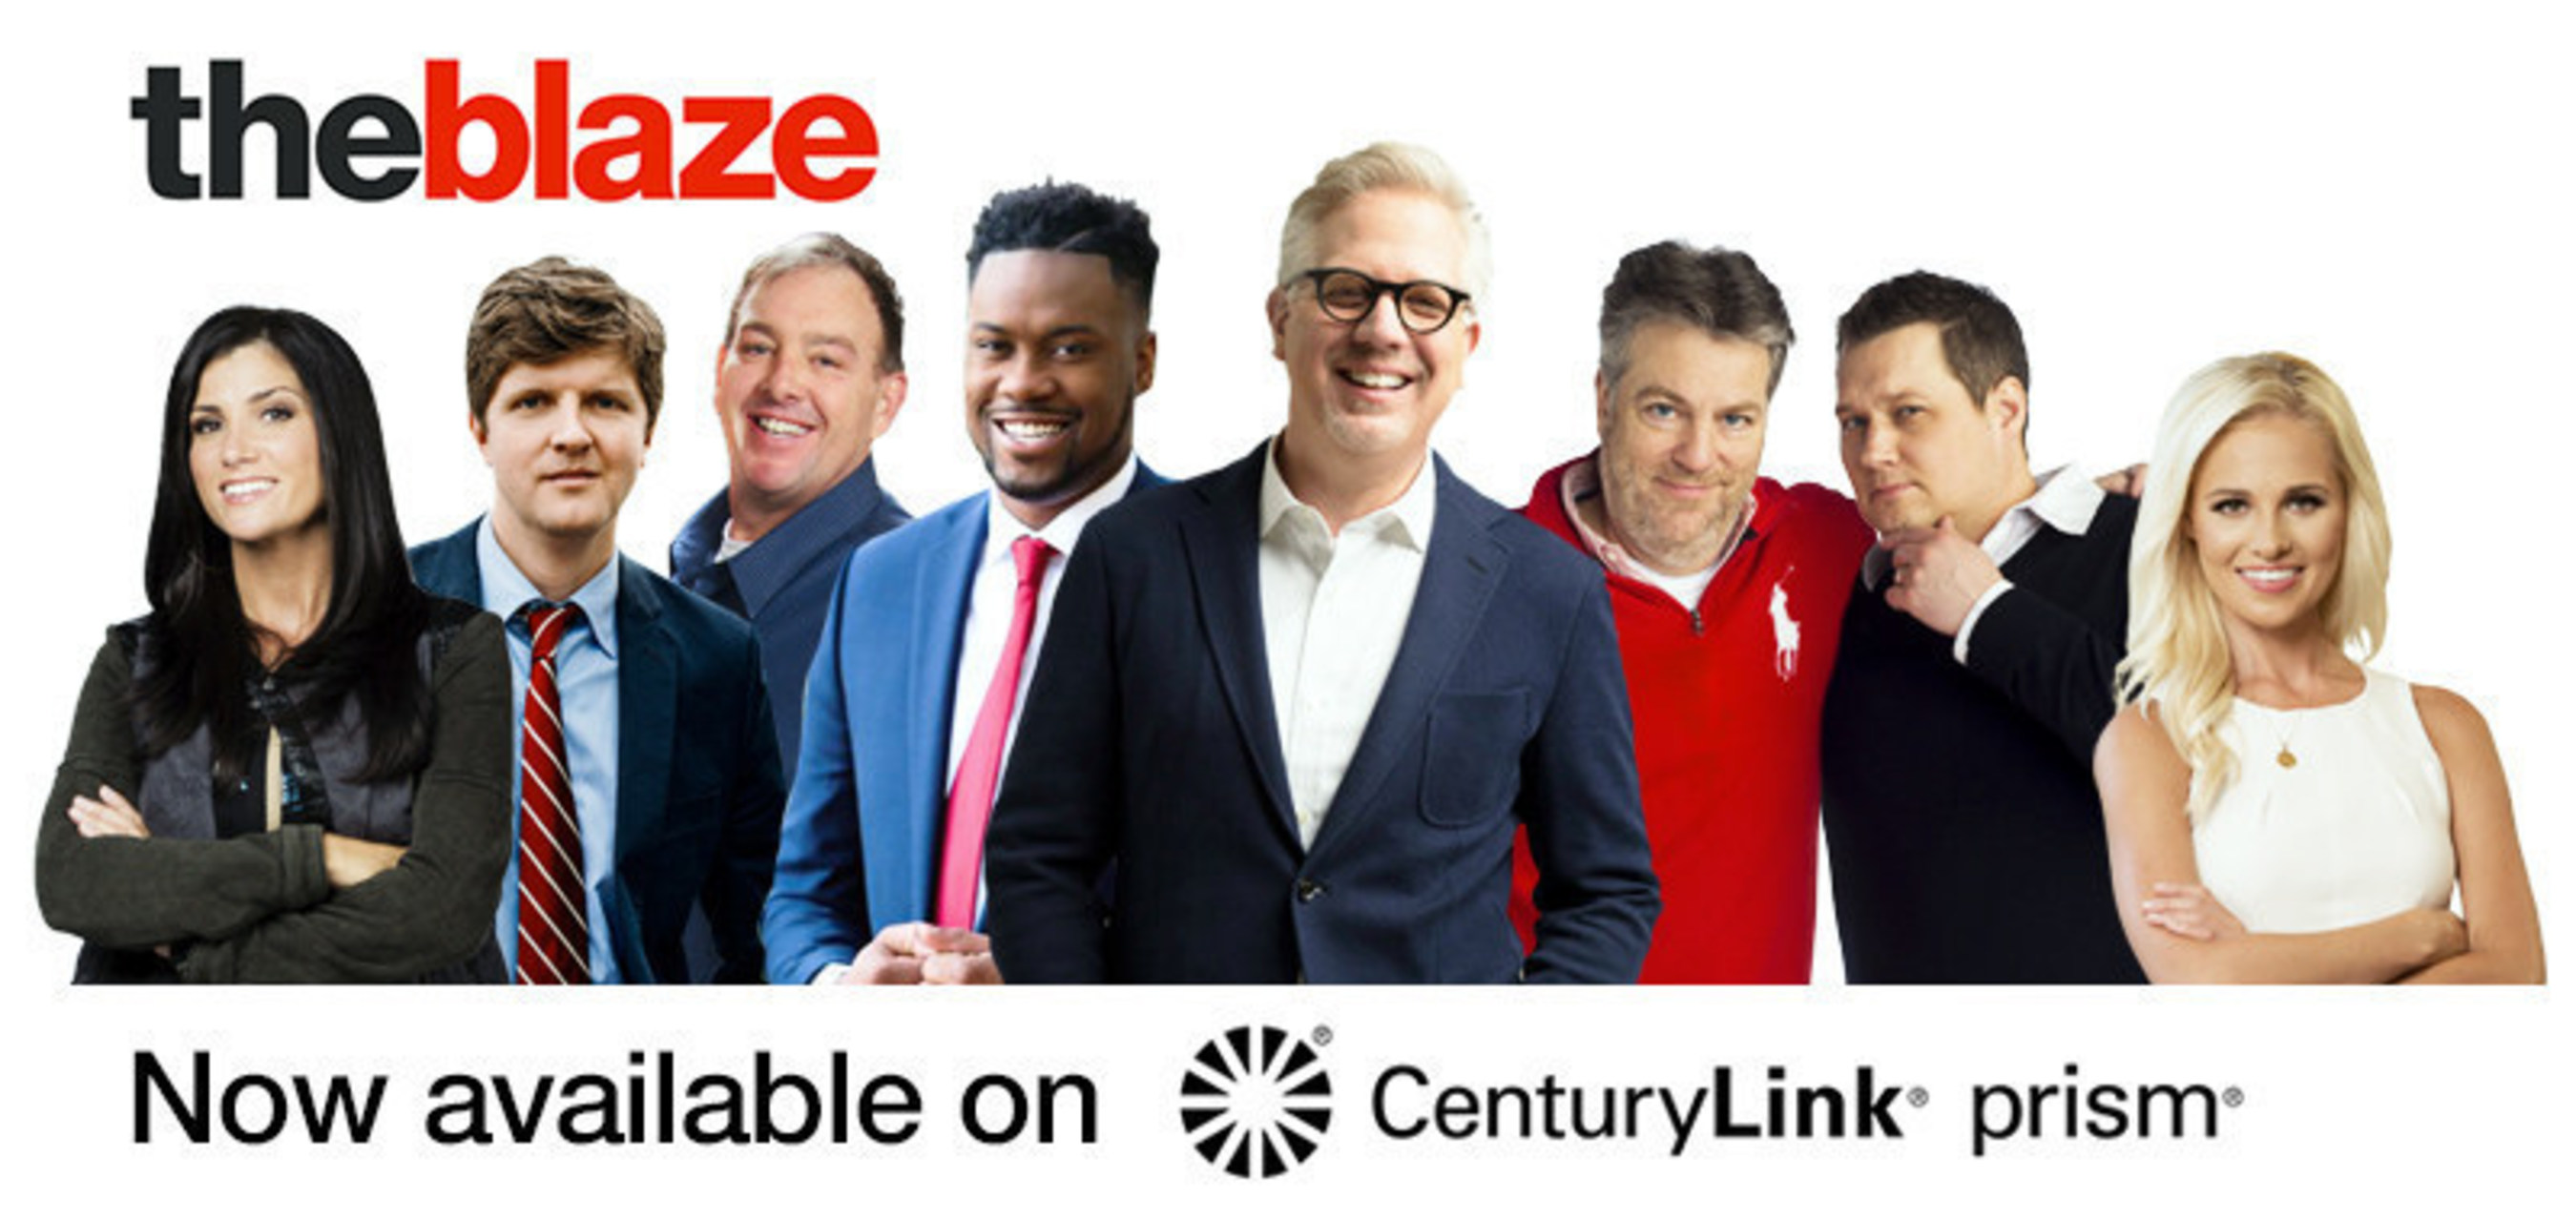 TheBlaze and CenturyLink Announce Multi-Year Agreement